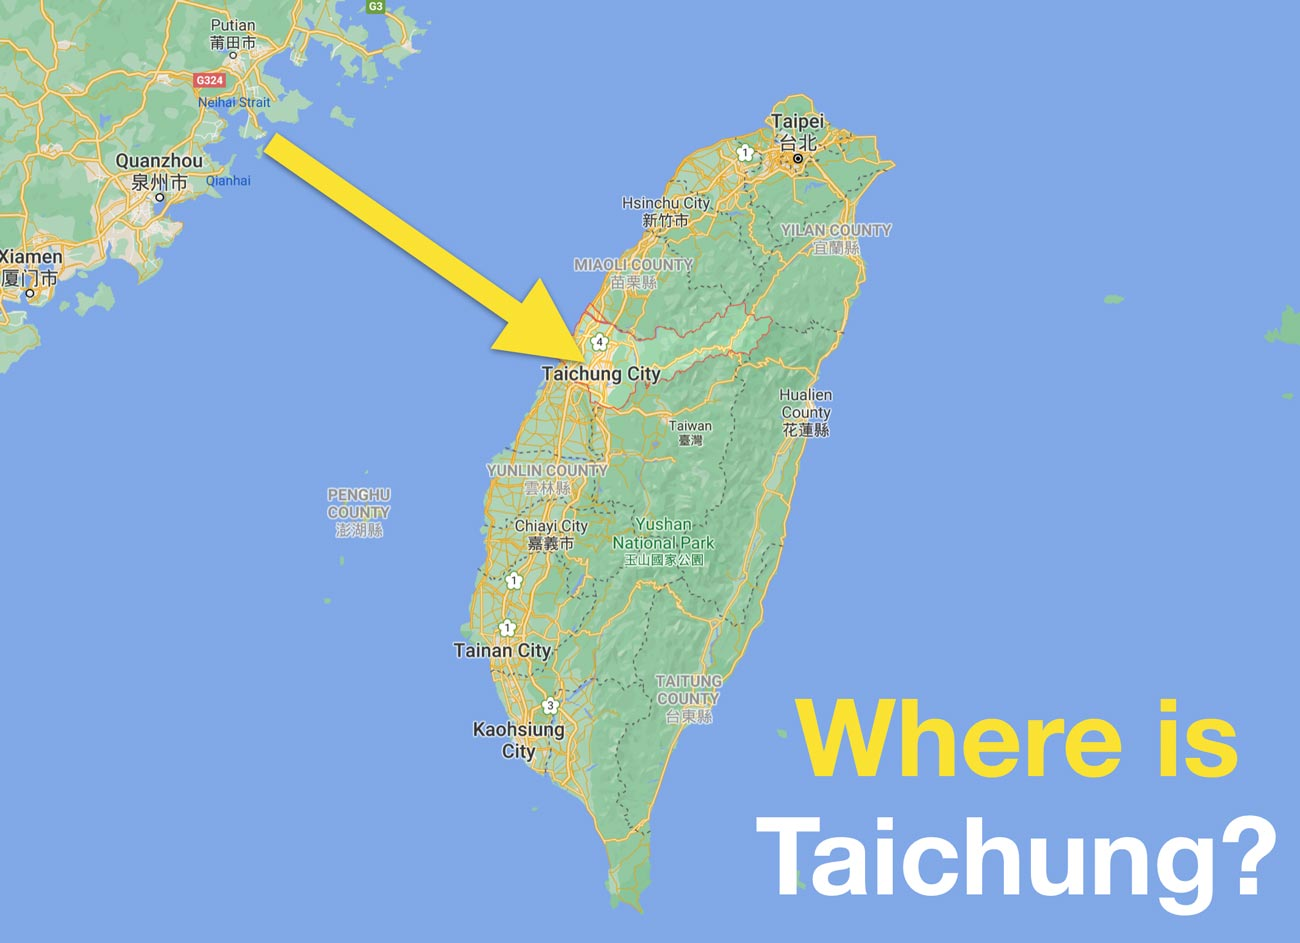 Where is Taichung city